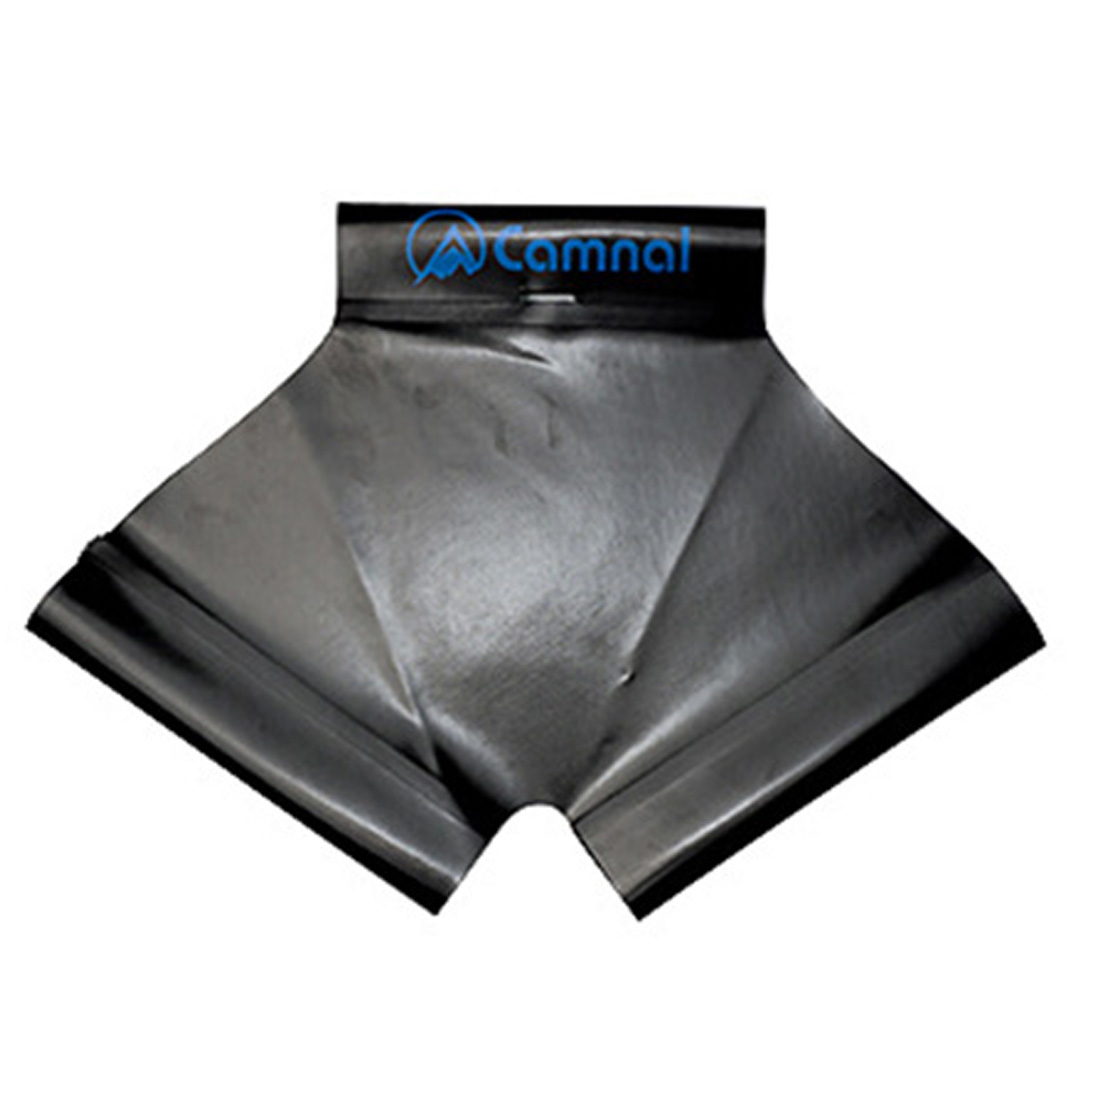 Outdoor Tree Climbing Seat Harness Butt Protectors Covers Wear-resisting PVC Hiking Walking Pants Harness